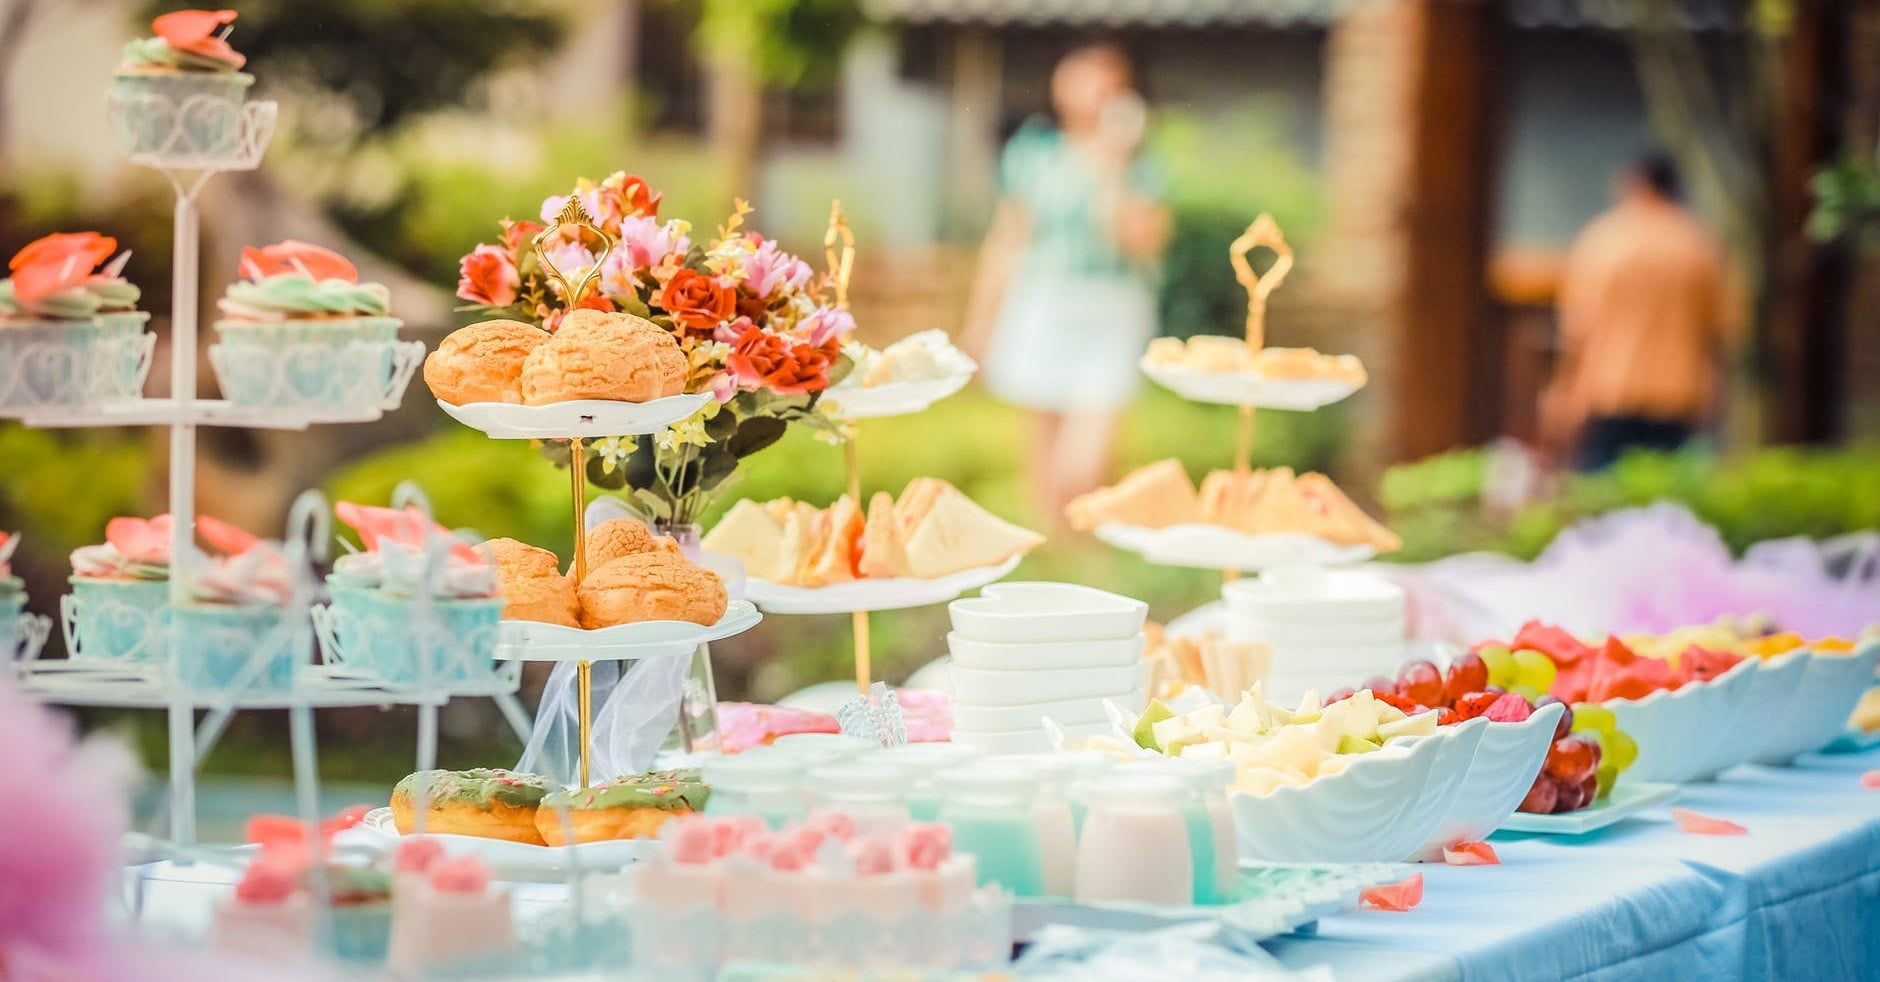 I Threw My Kid the Perfect Pinterest Birthday Party — Here's Why I Regret It